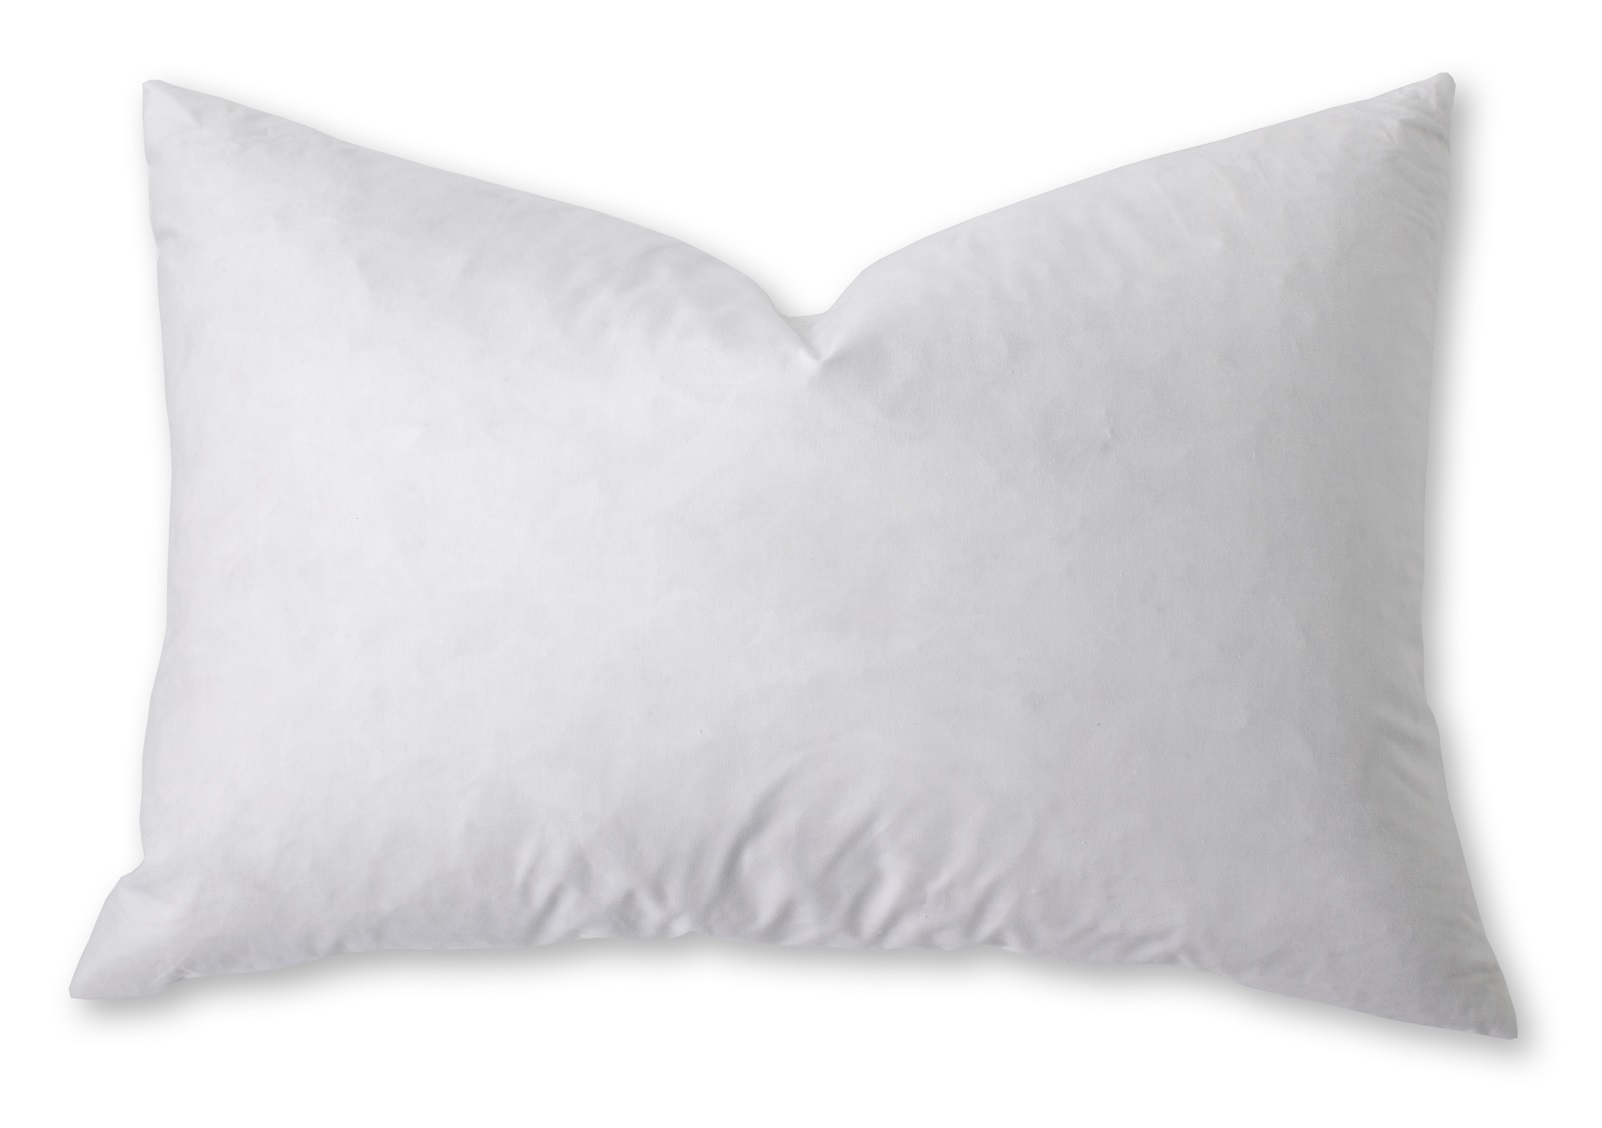 Throw Pillow Inserts Bulk : Toss Pillow Inserts. White Throw Pillow Insert Threshold. Customers Also Viewed. Wholesale ...